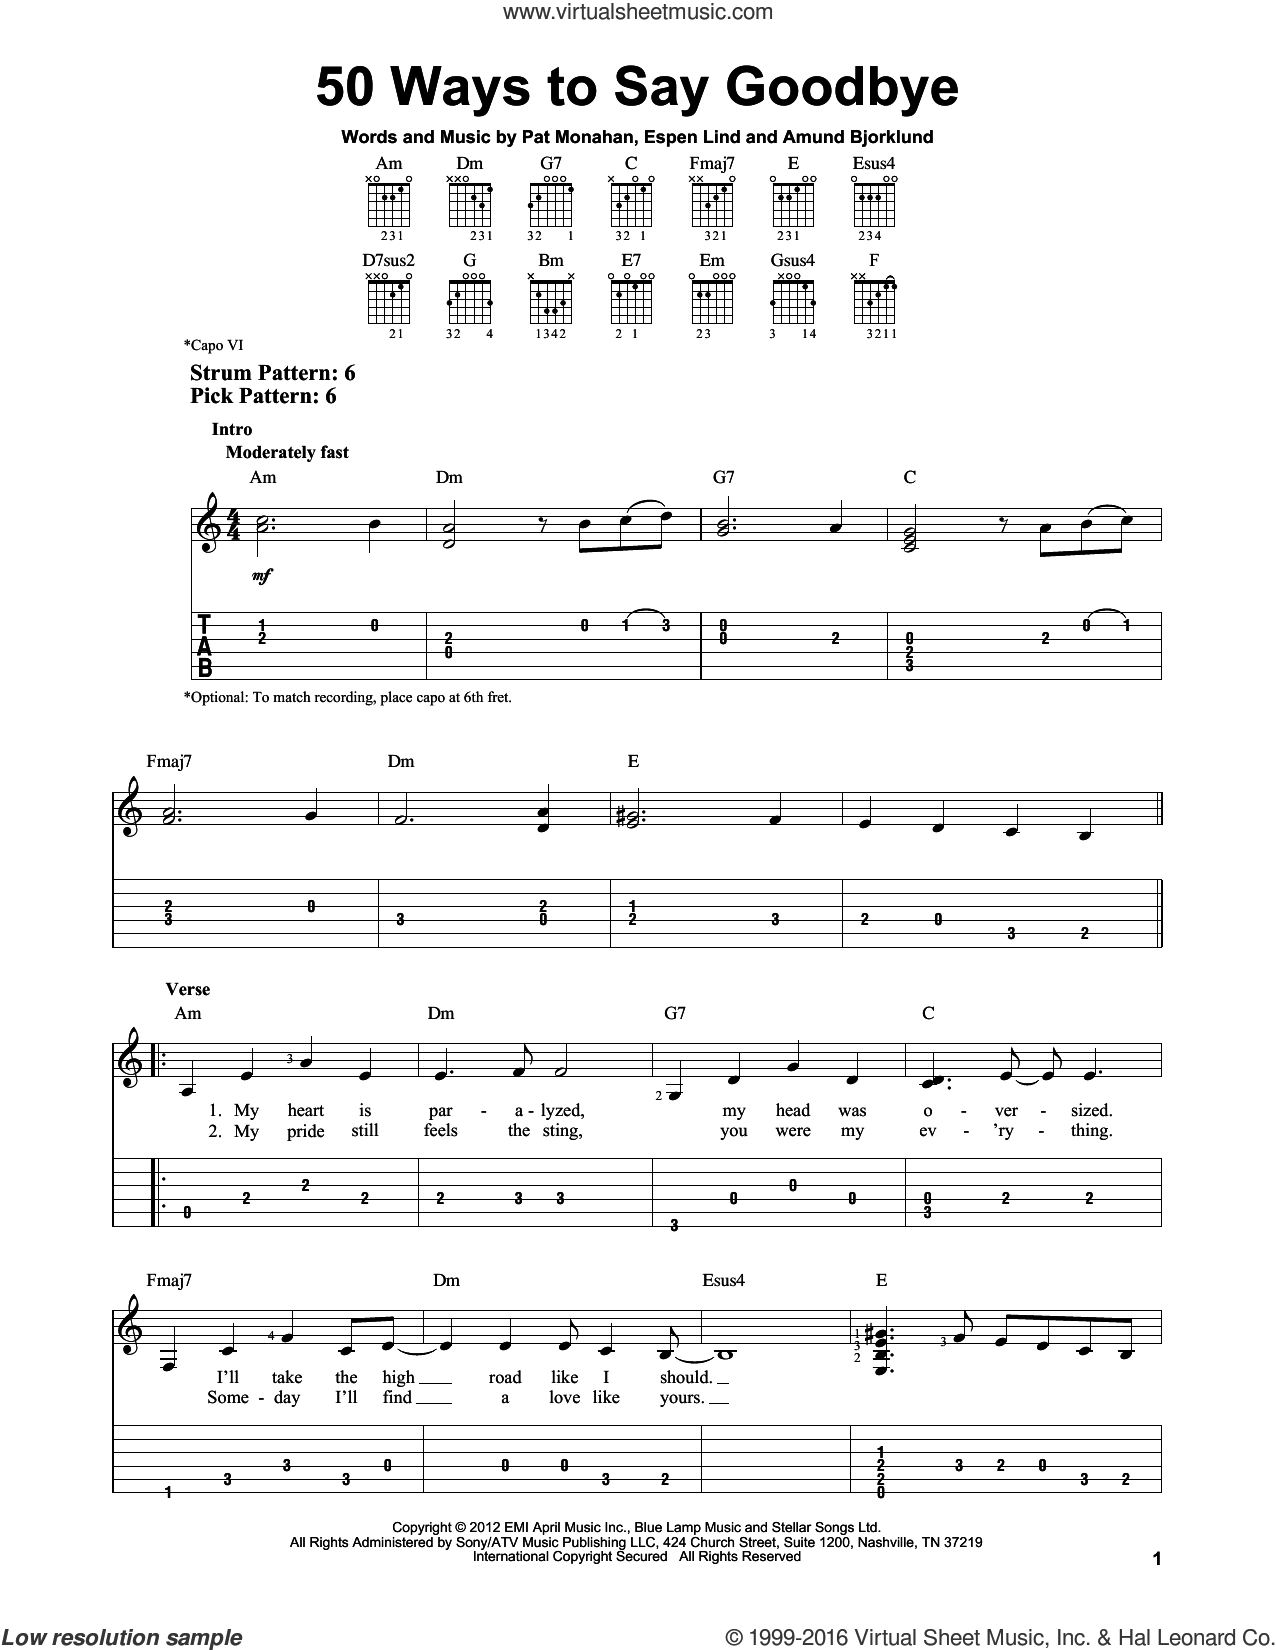 50 Ways To Say Goodbye sheet music for guitar solo (easy tablature) by Pat Monahan, Train and Amund Bjorklund. Score Image Preview.